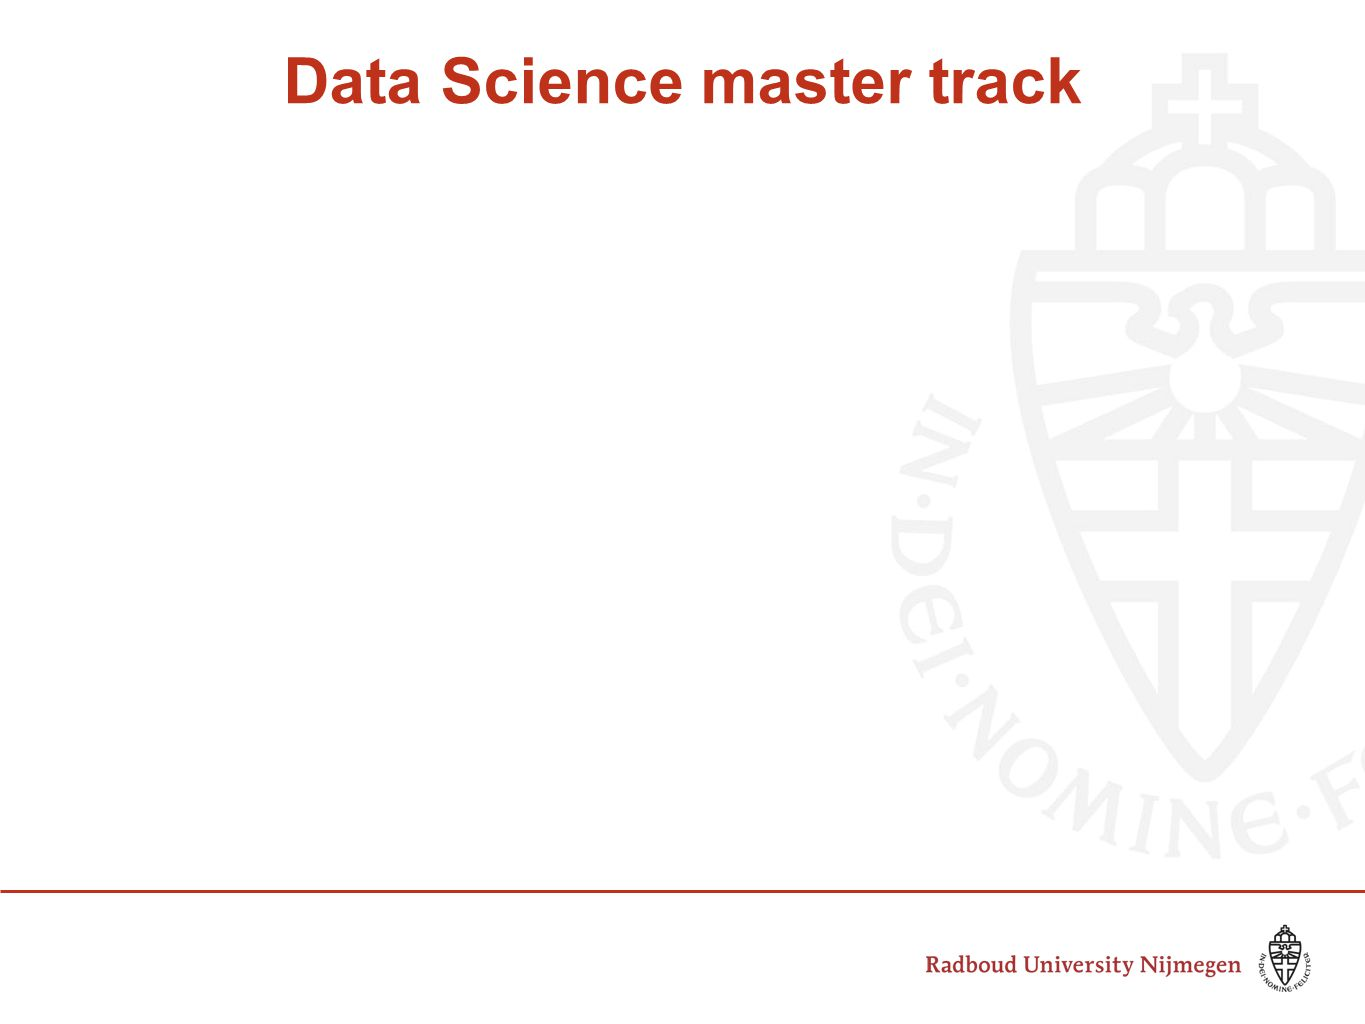 Data Science master track